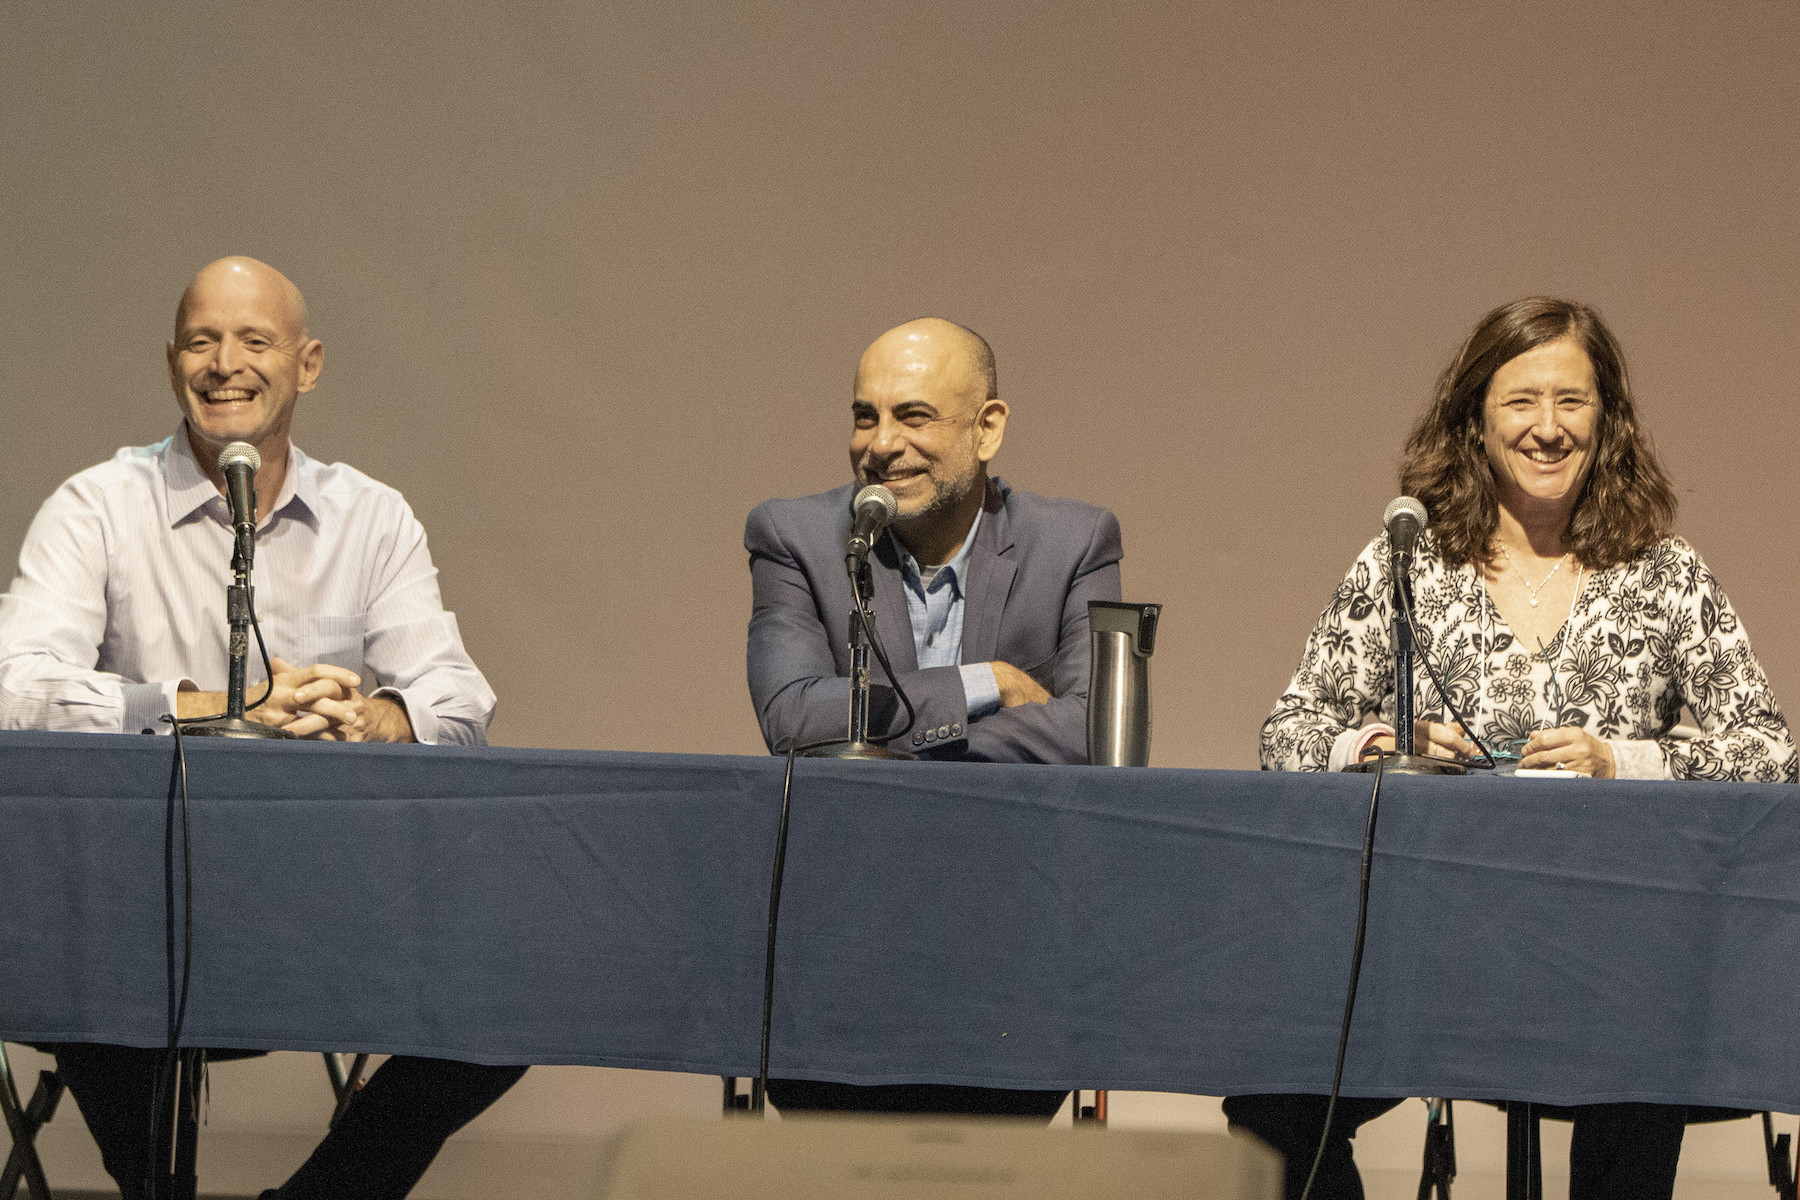 UCLA Luskin chairs, from left, JR DeShazo of Public Policy, Vinit Mukhija of Urban Planning and Laura Abrams of Social Welfare. Photo by Mary Braswell